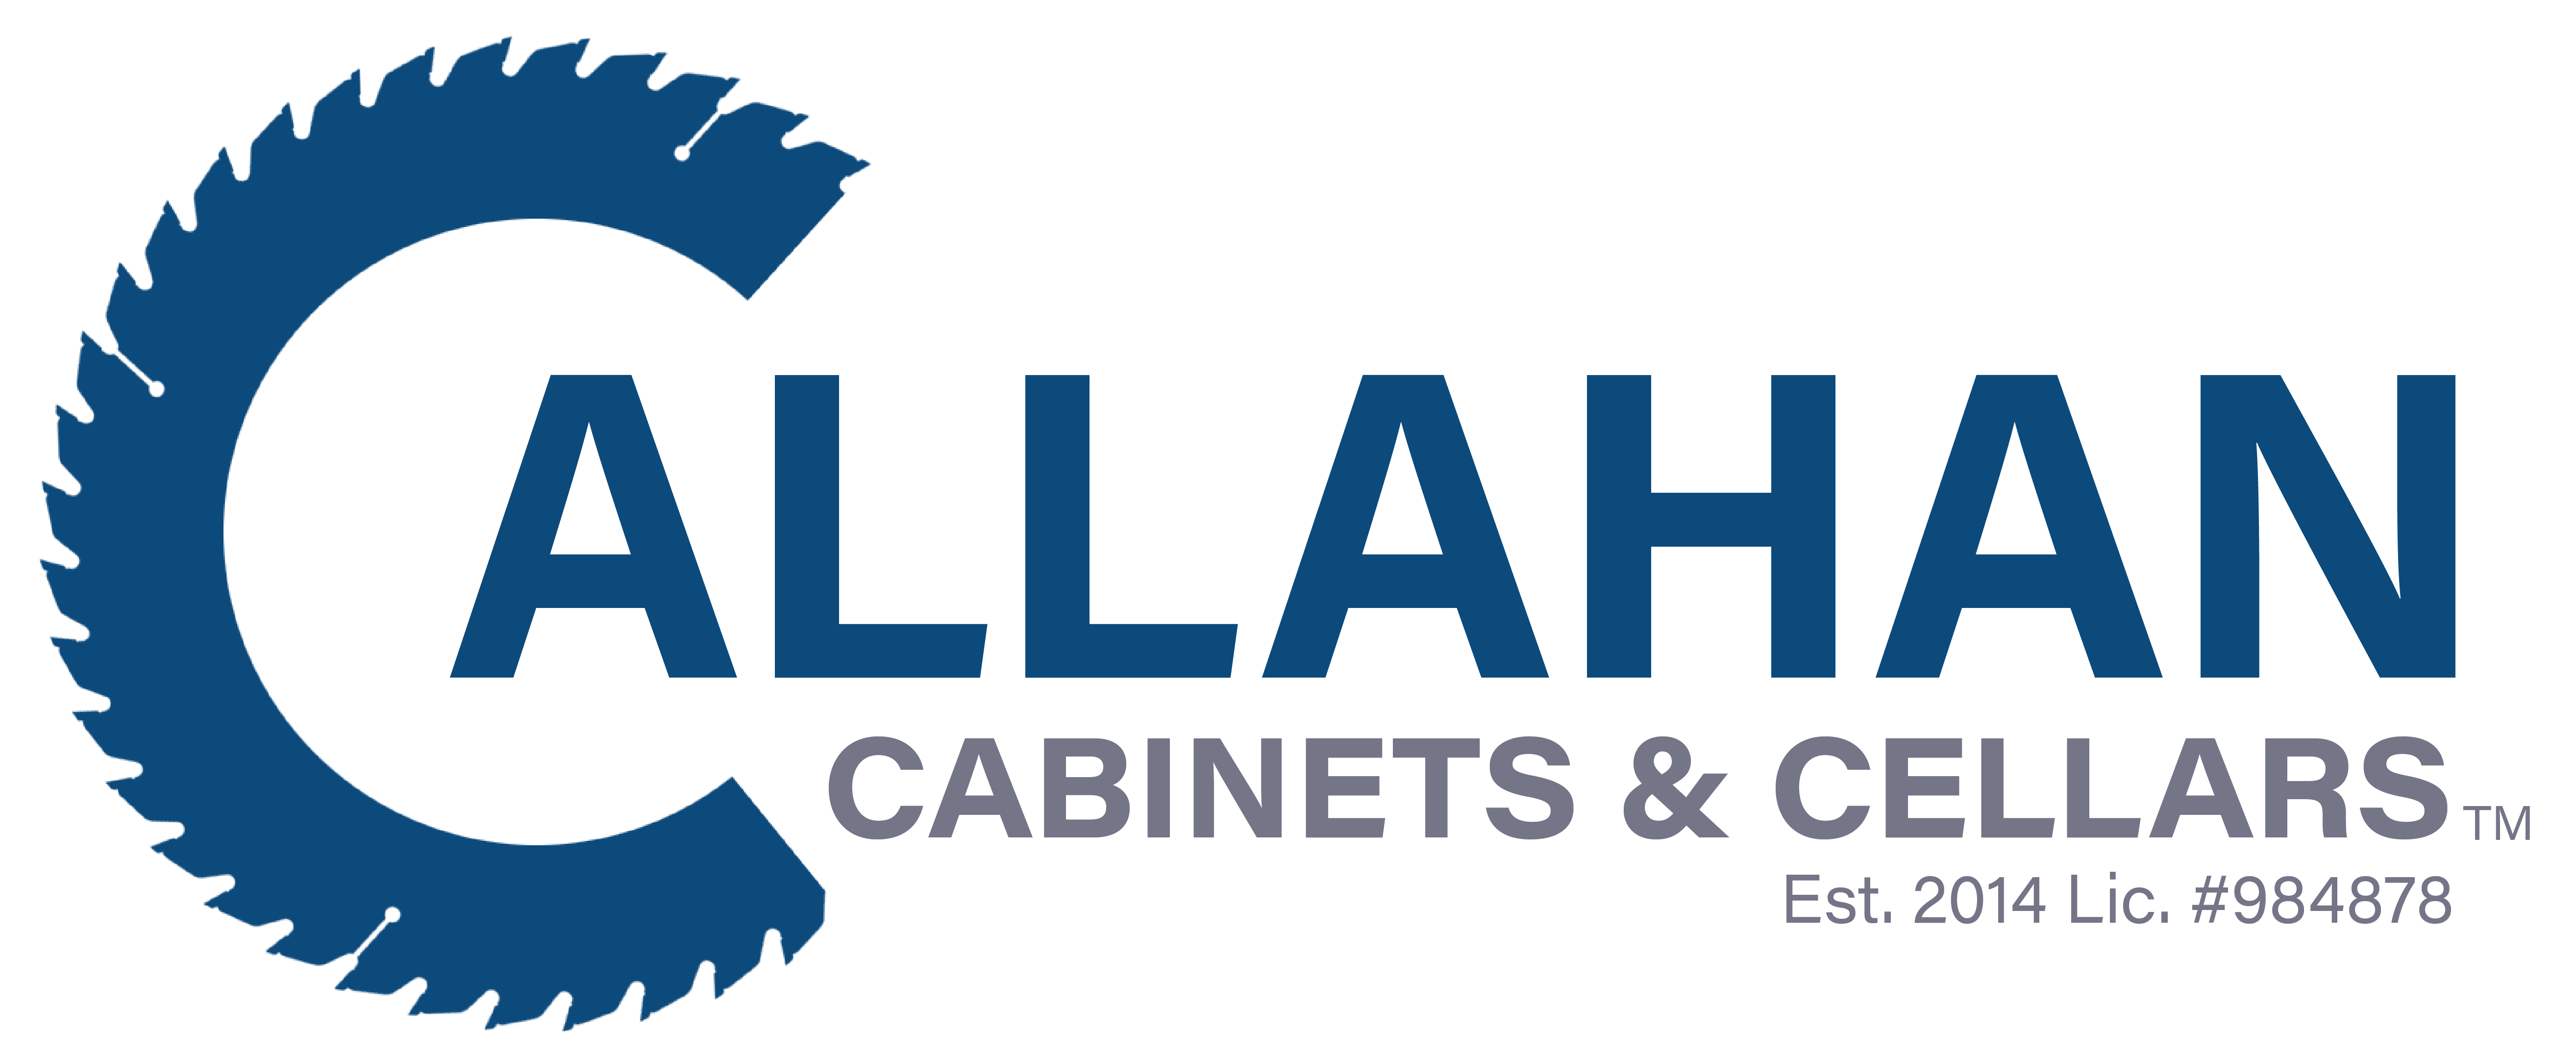 Callahan Cabinets Logo Two-Color PNG